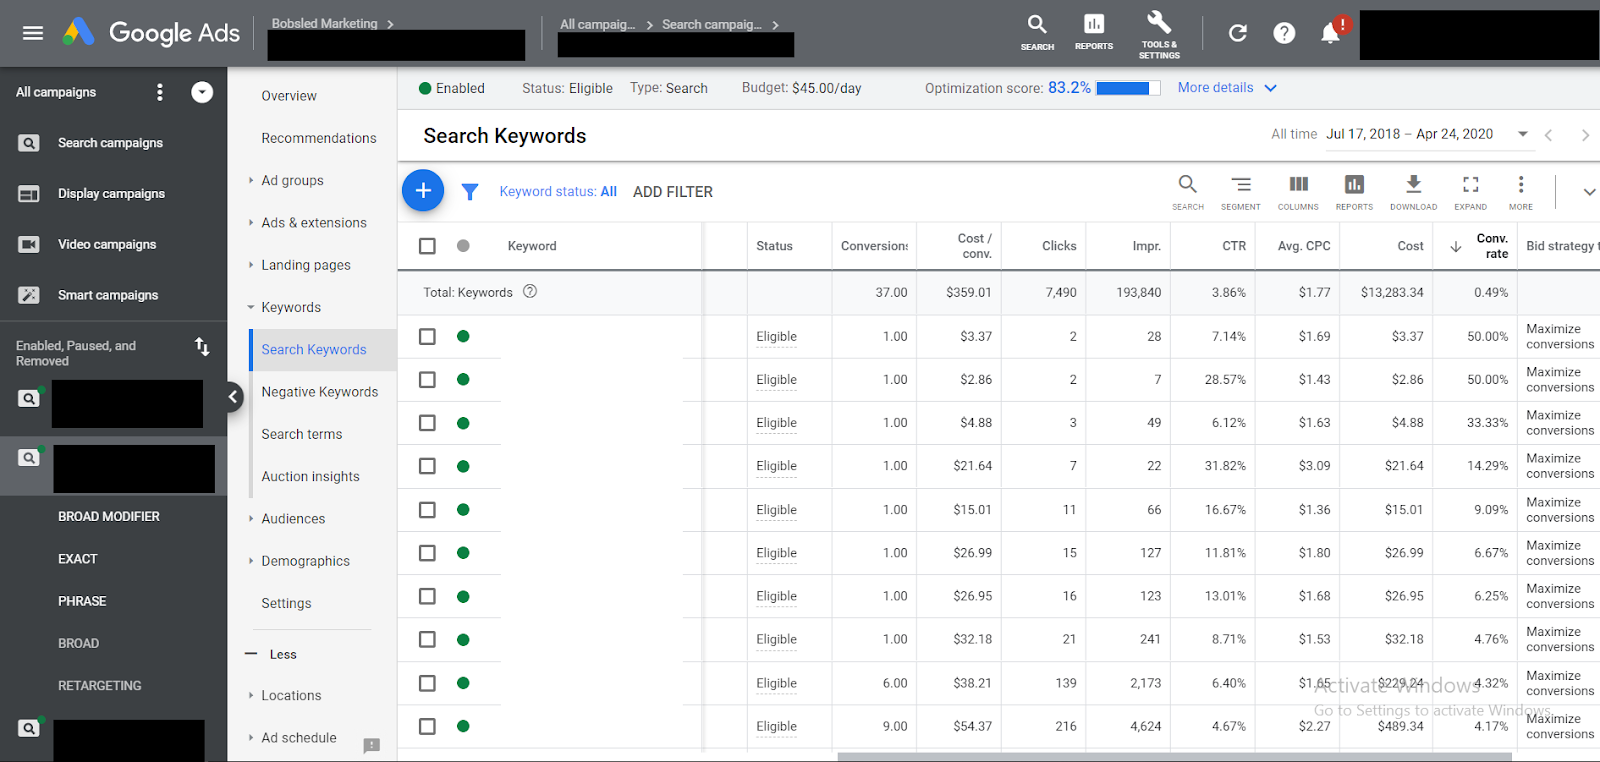 Keyword performance data in the Google Ads dashboard.